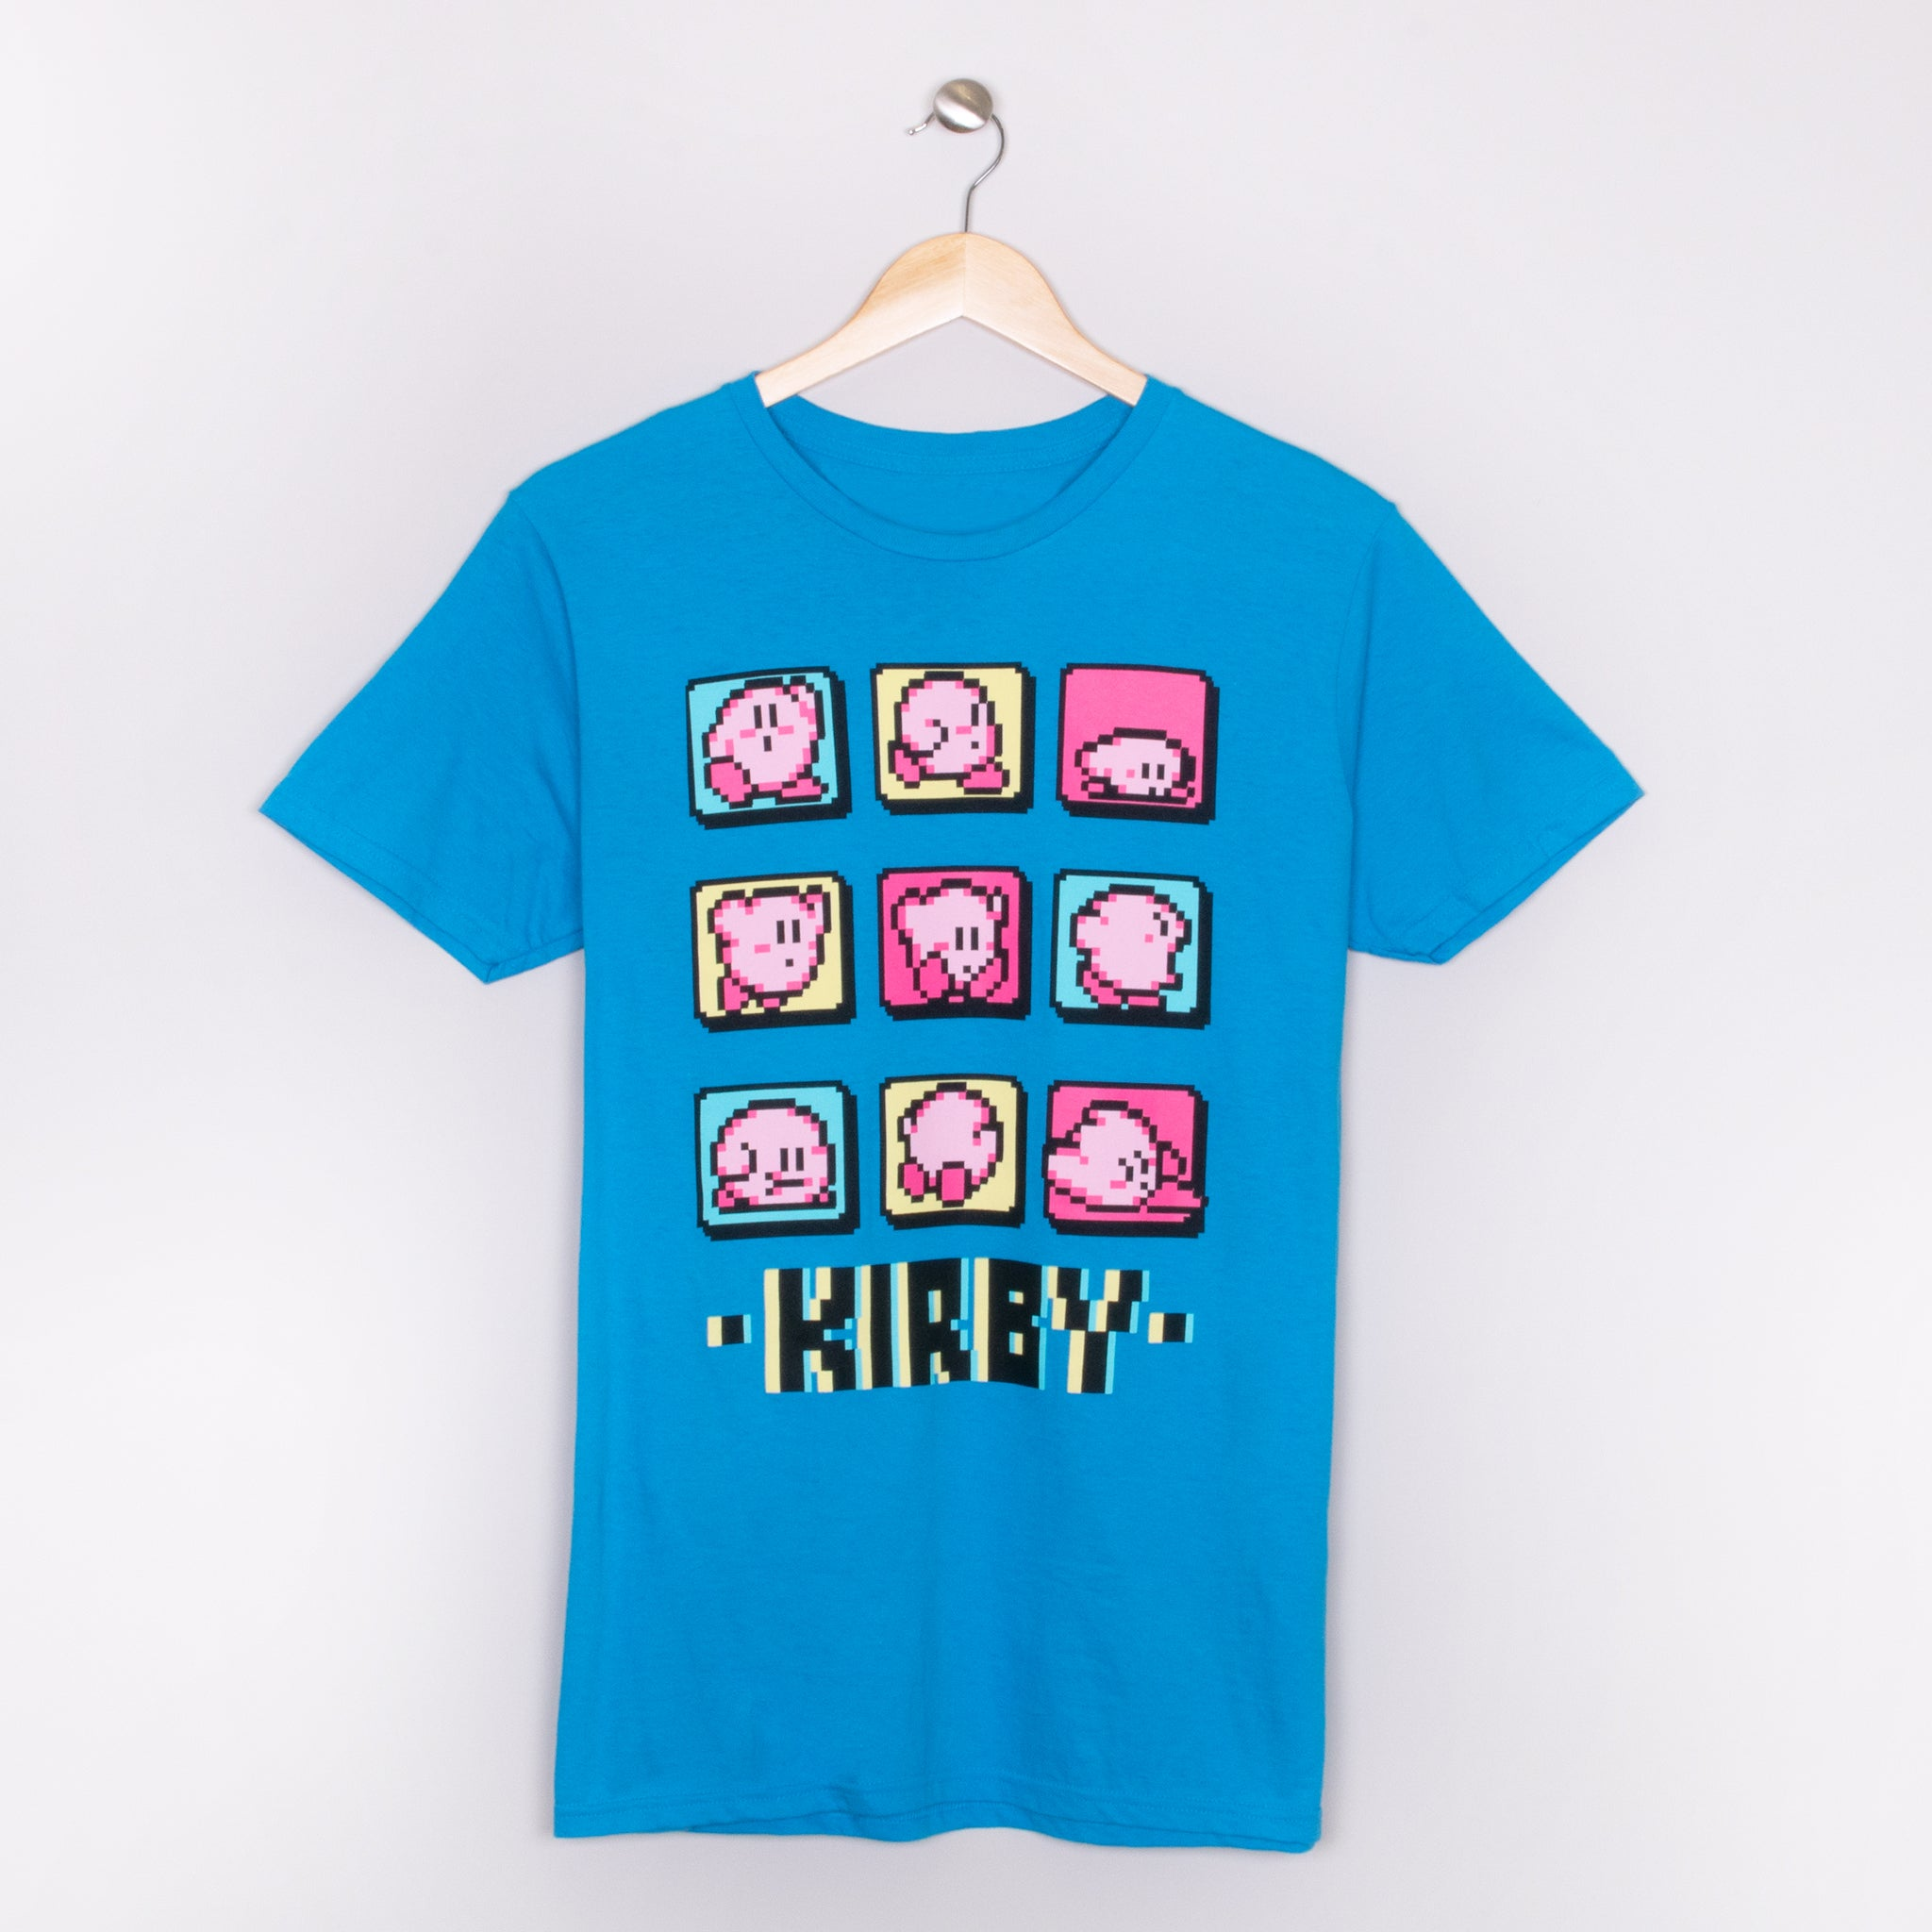 kirby pixel blue nintendo video games gaming t-shirt apparel shirt culturefly